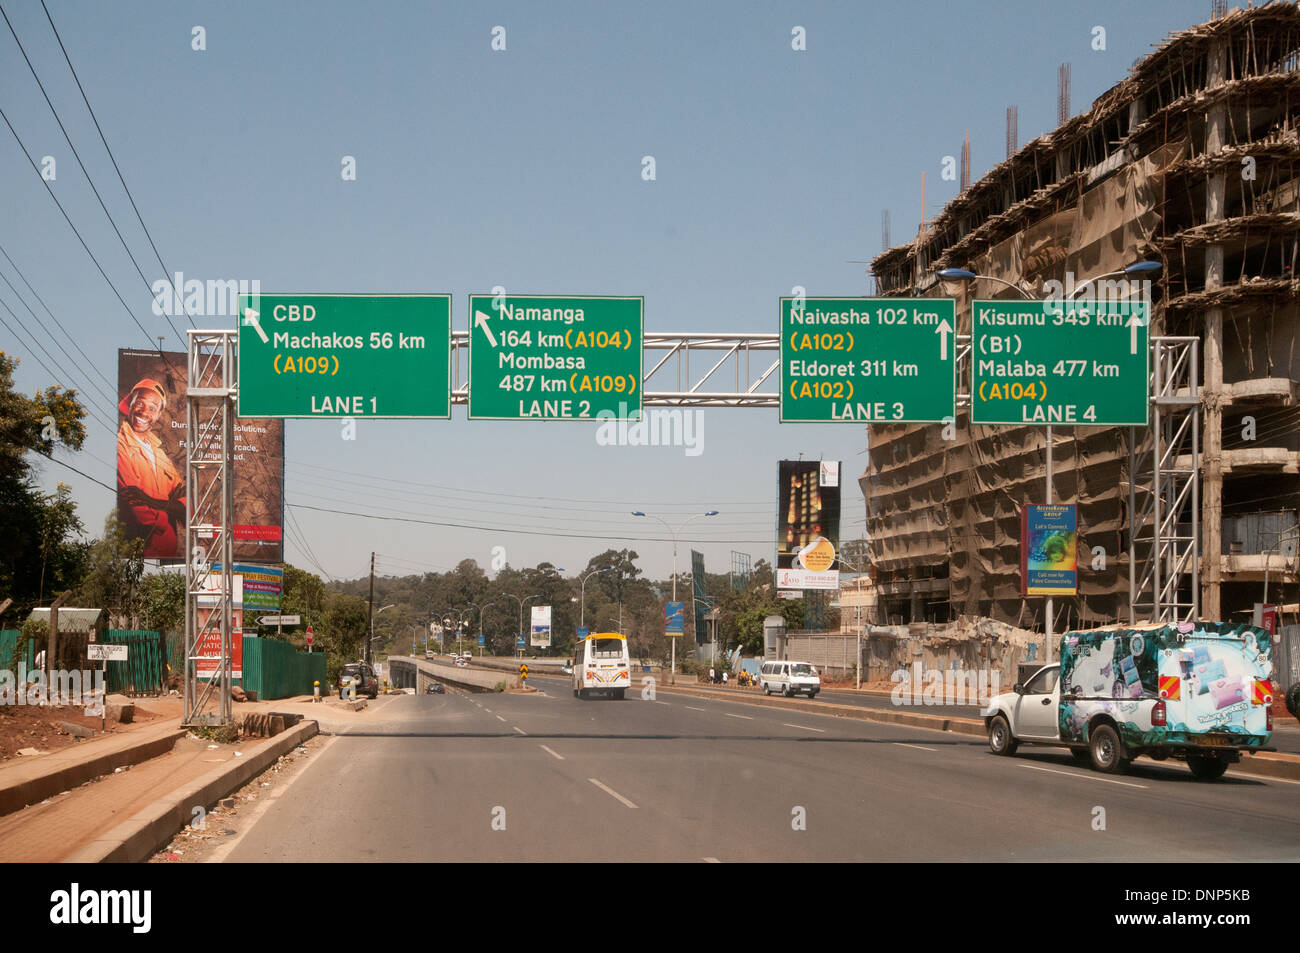 Overhead road signs and new buildings under construction on Forest Road Nairobi Kenya - Stock Image